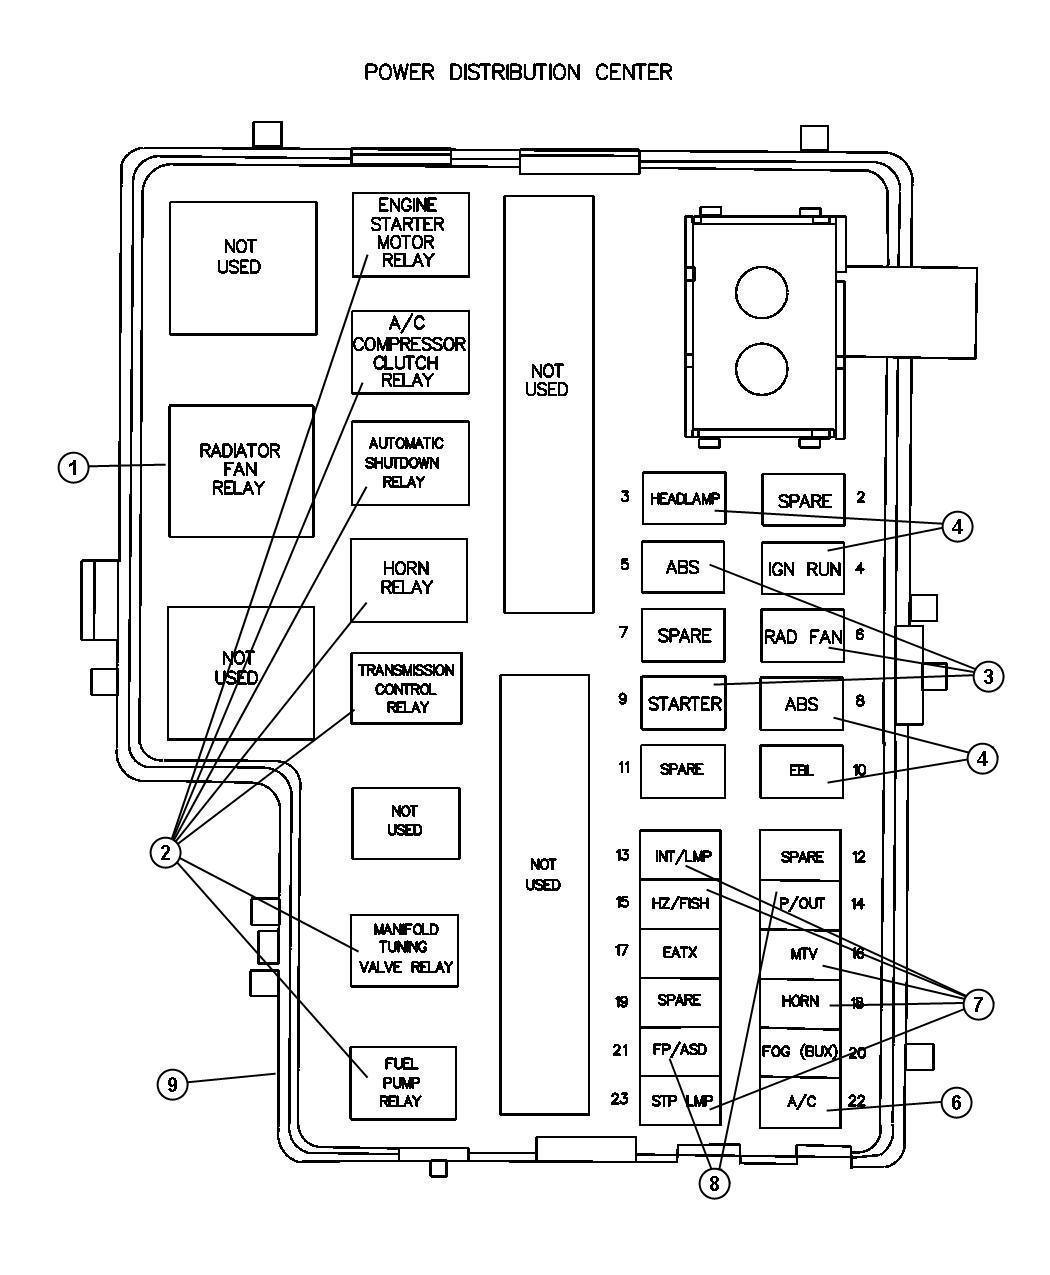 00i81518 wiring diagrams for mack trucks the wiring diagram readingrat net 2002 dodge neon fuse box diagram manual at alyssarenee.co